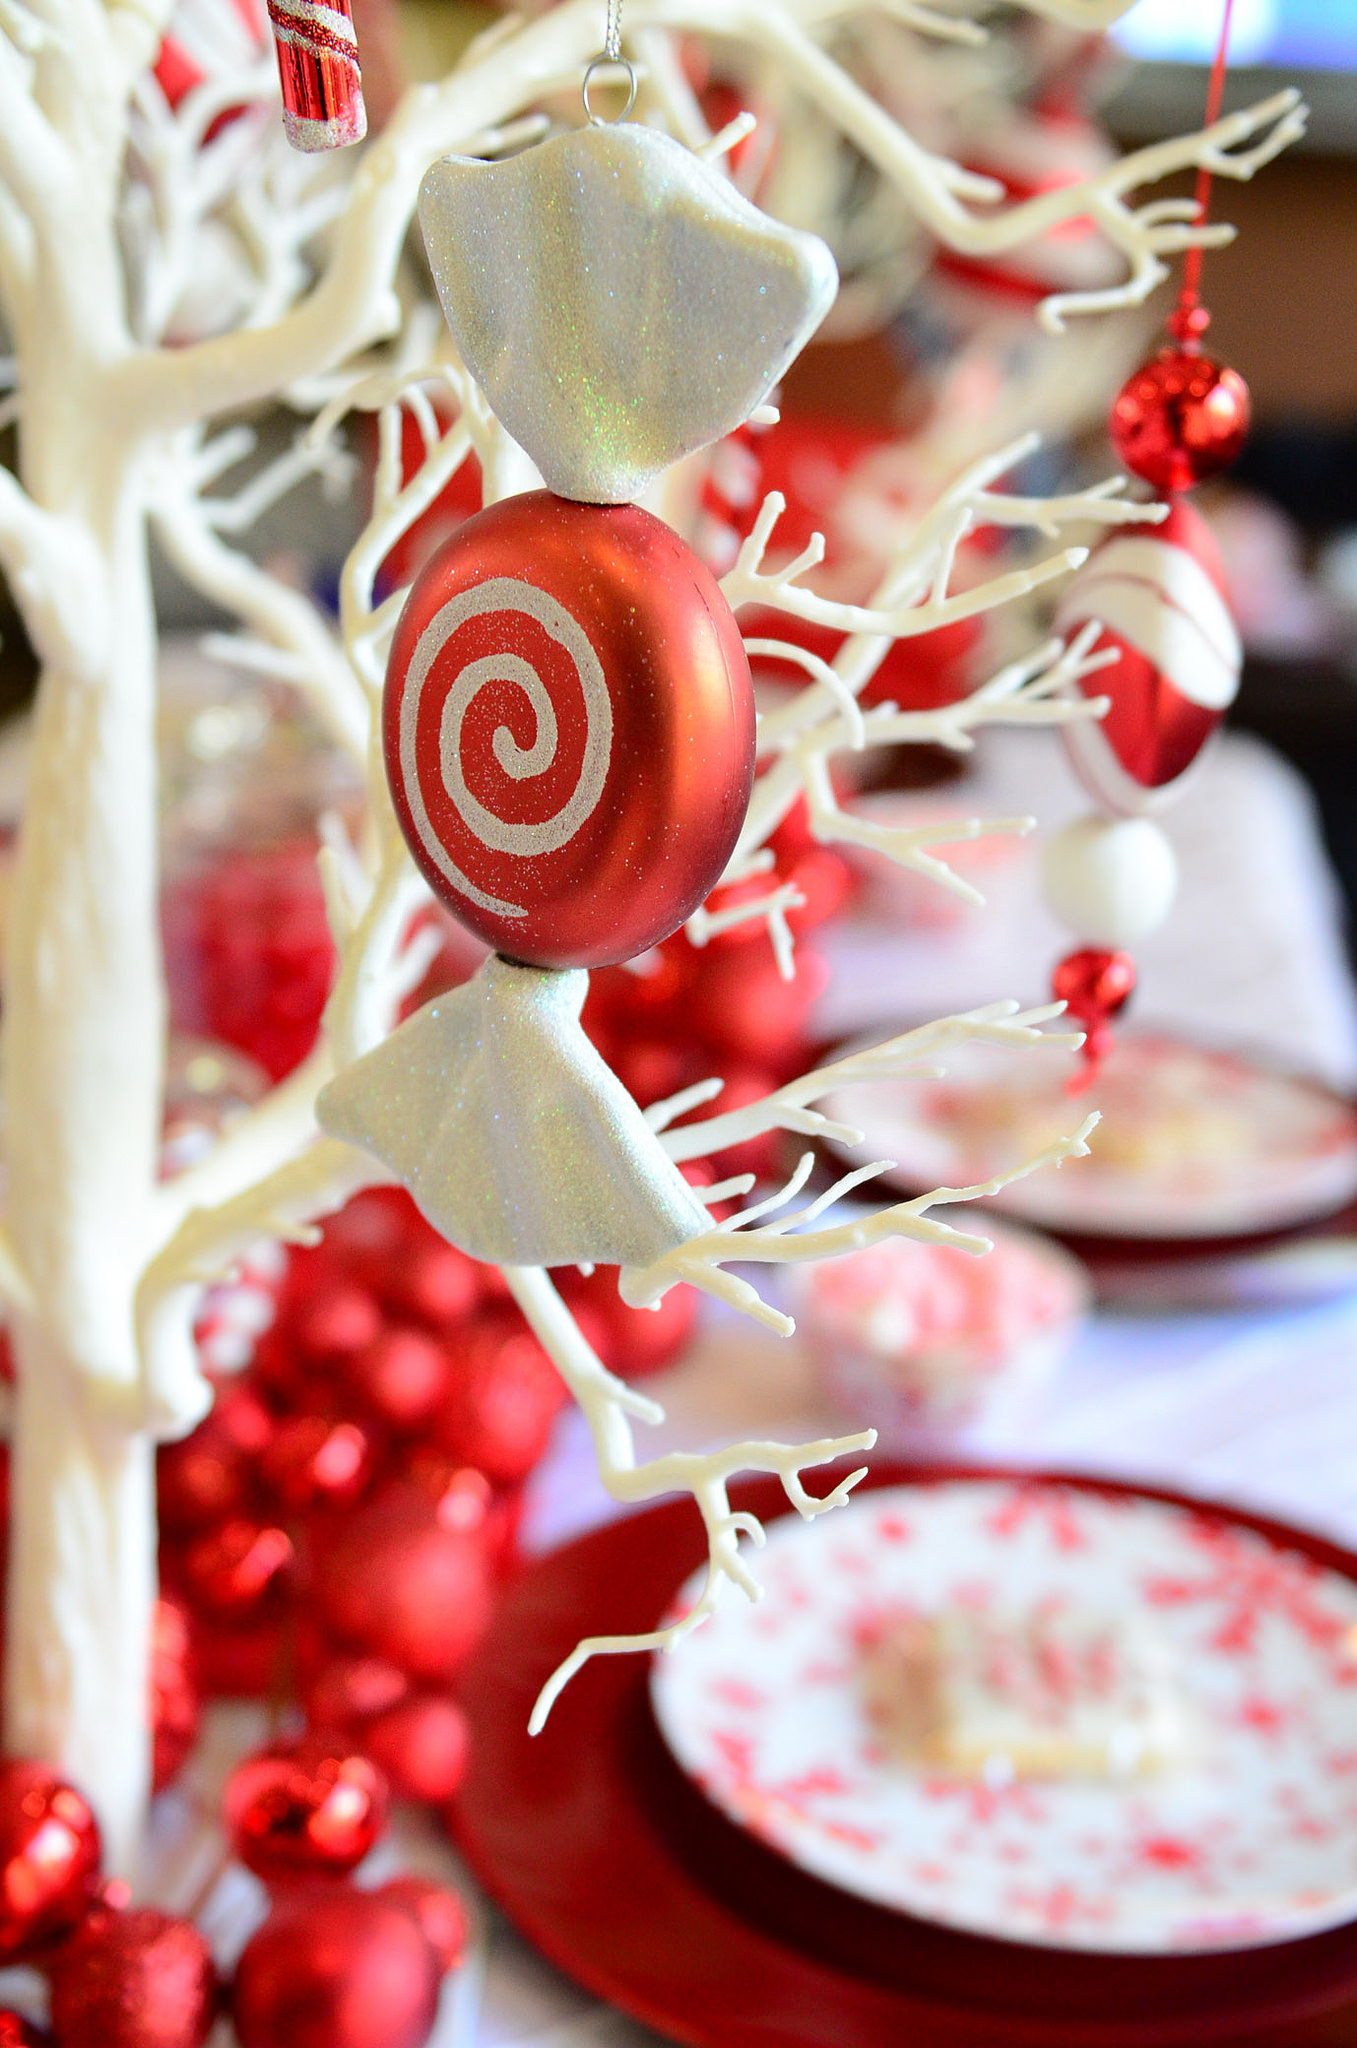 Red and white christmas decorations - Red And White Candy Christmas Tree Ornament